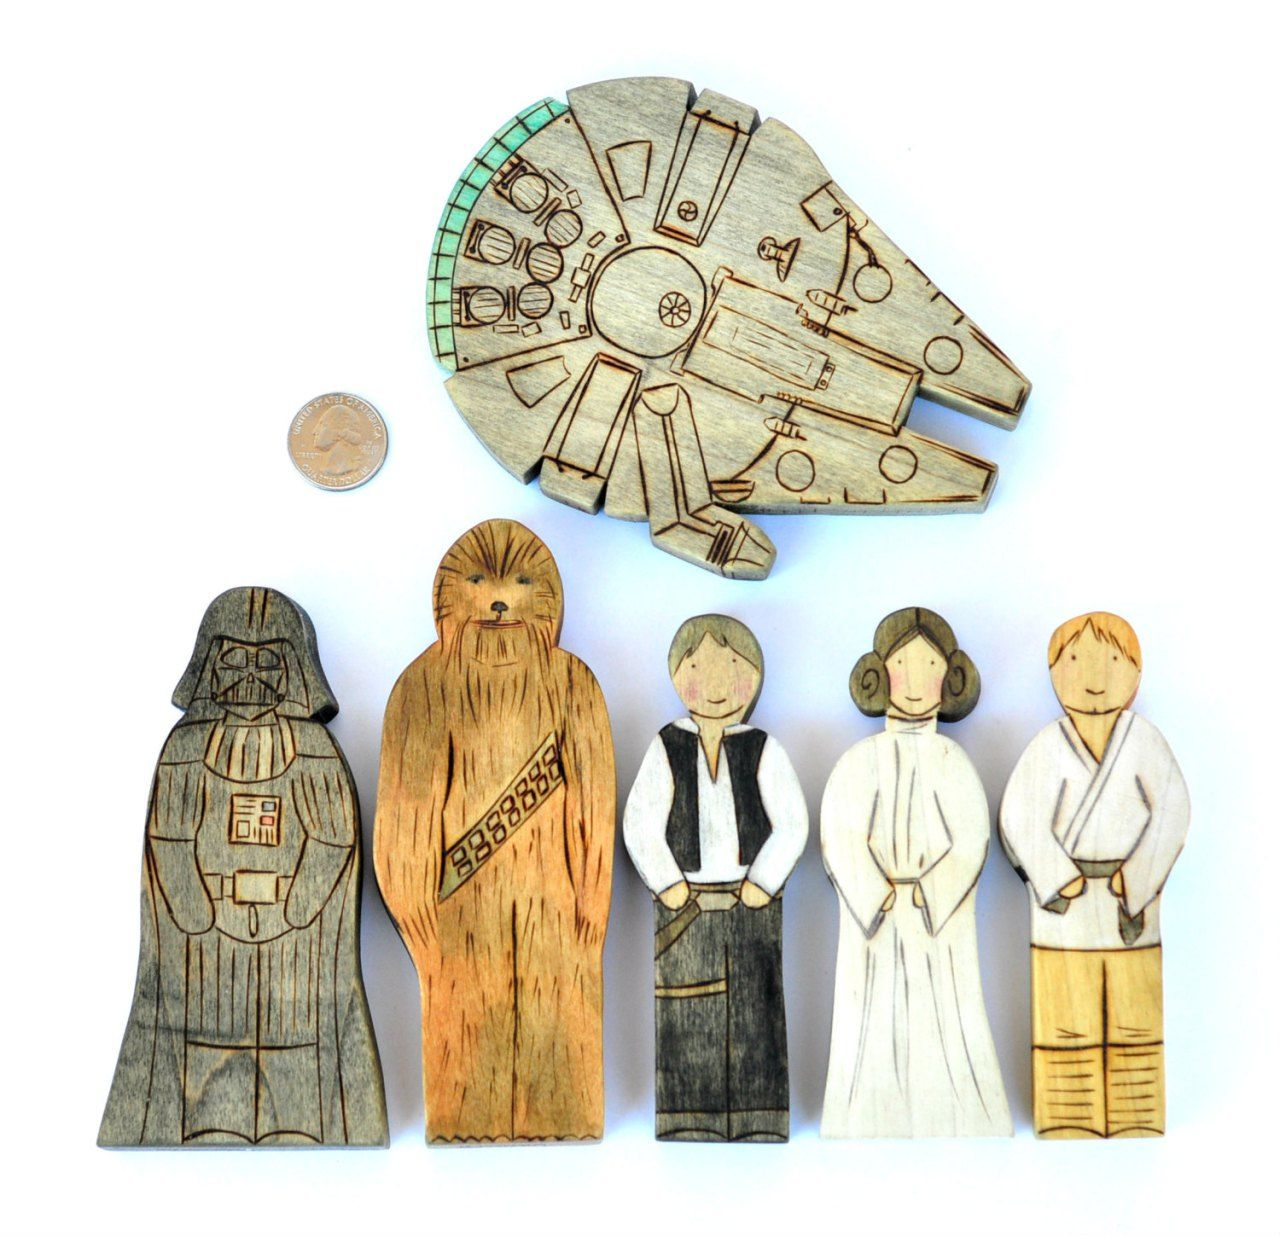 Star Wars Toy Set By Armadillo Dreams Star Wars Toys Toy Sets Wooden Stars